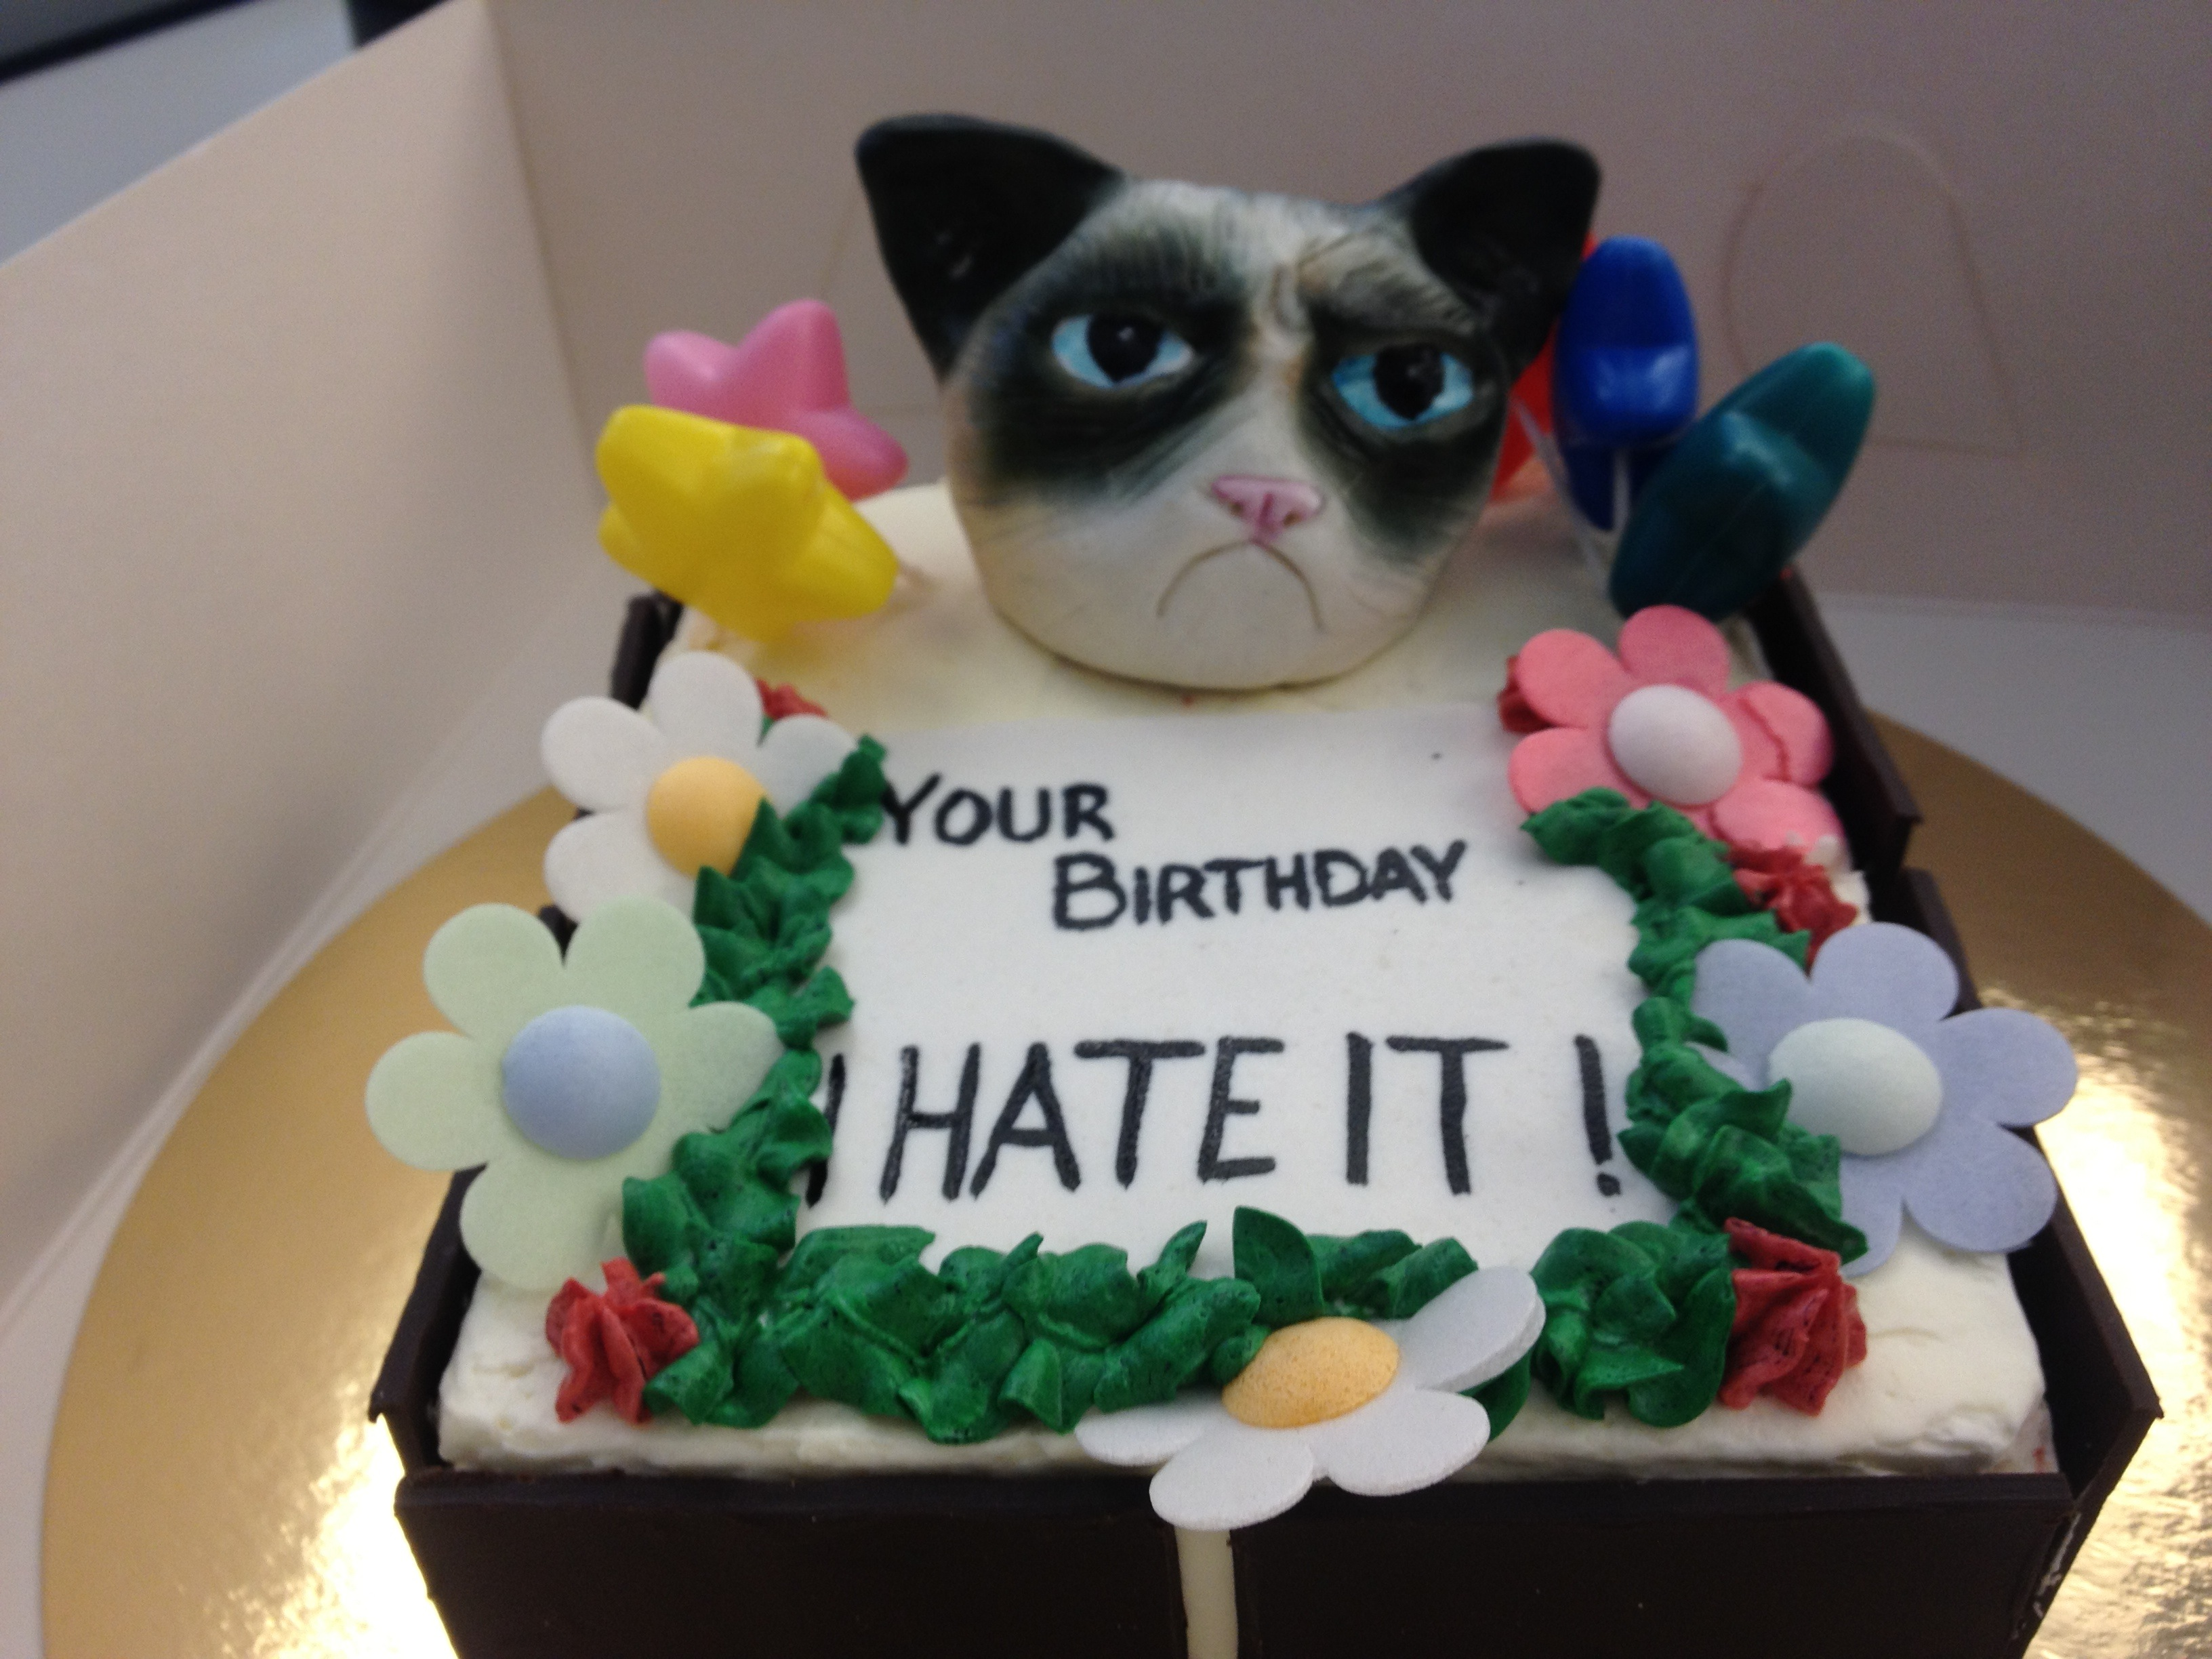 Image Gallery of Grumpy Cat Crappy Birthday Cake